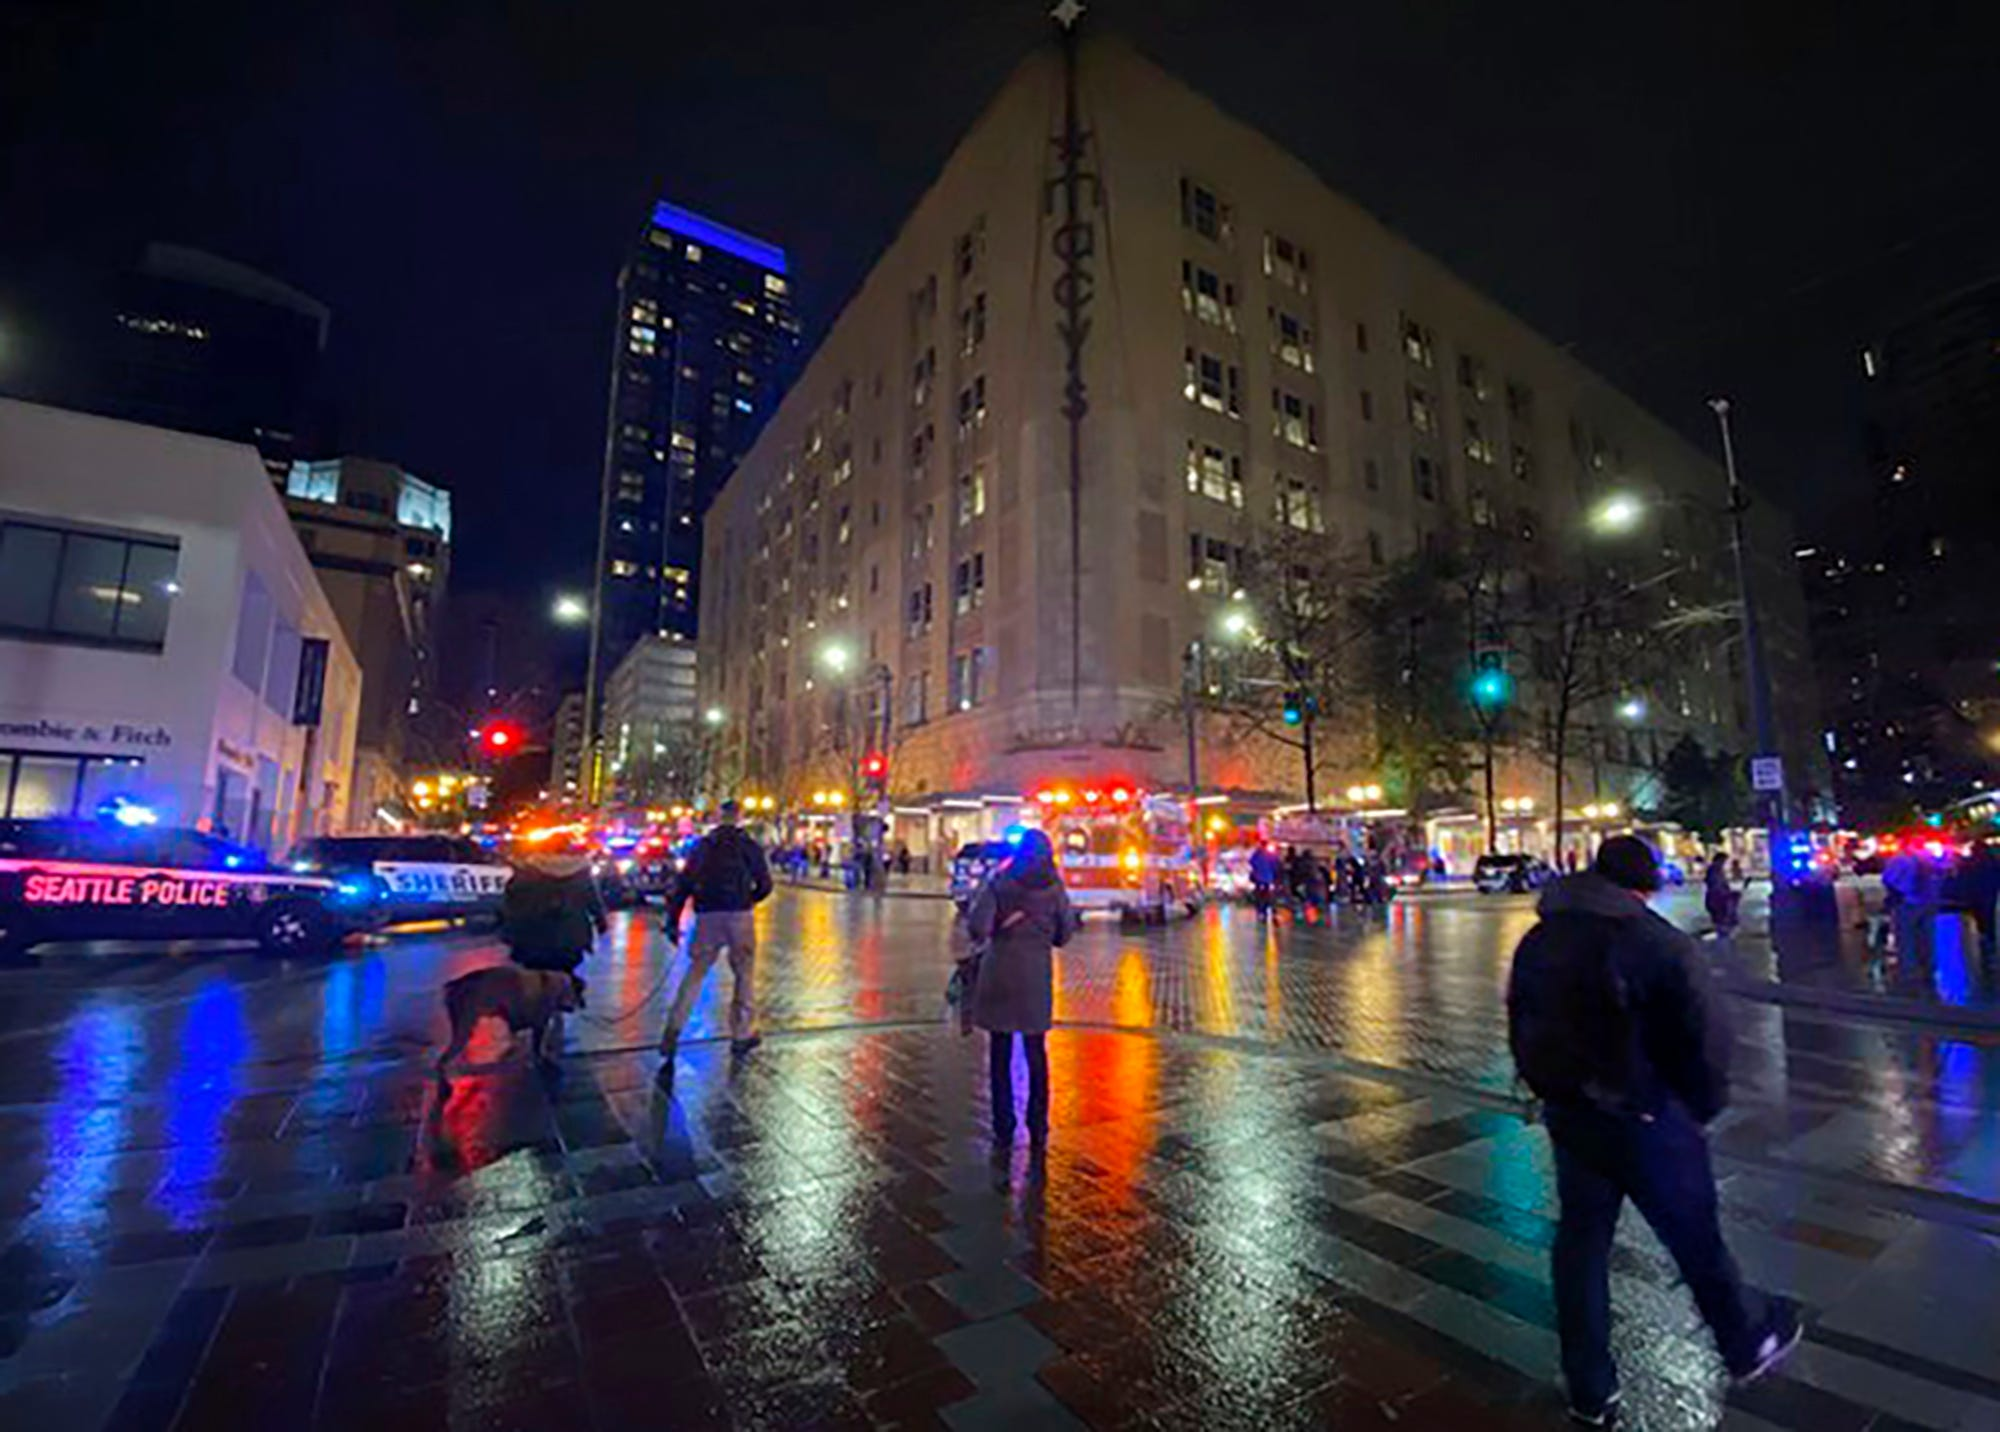 At least 1 dead, 7 injured in shooting outside McDonald s in downtown Seattle